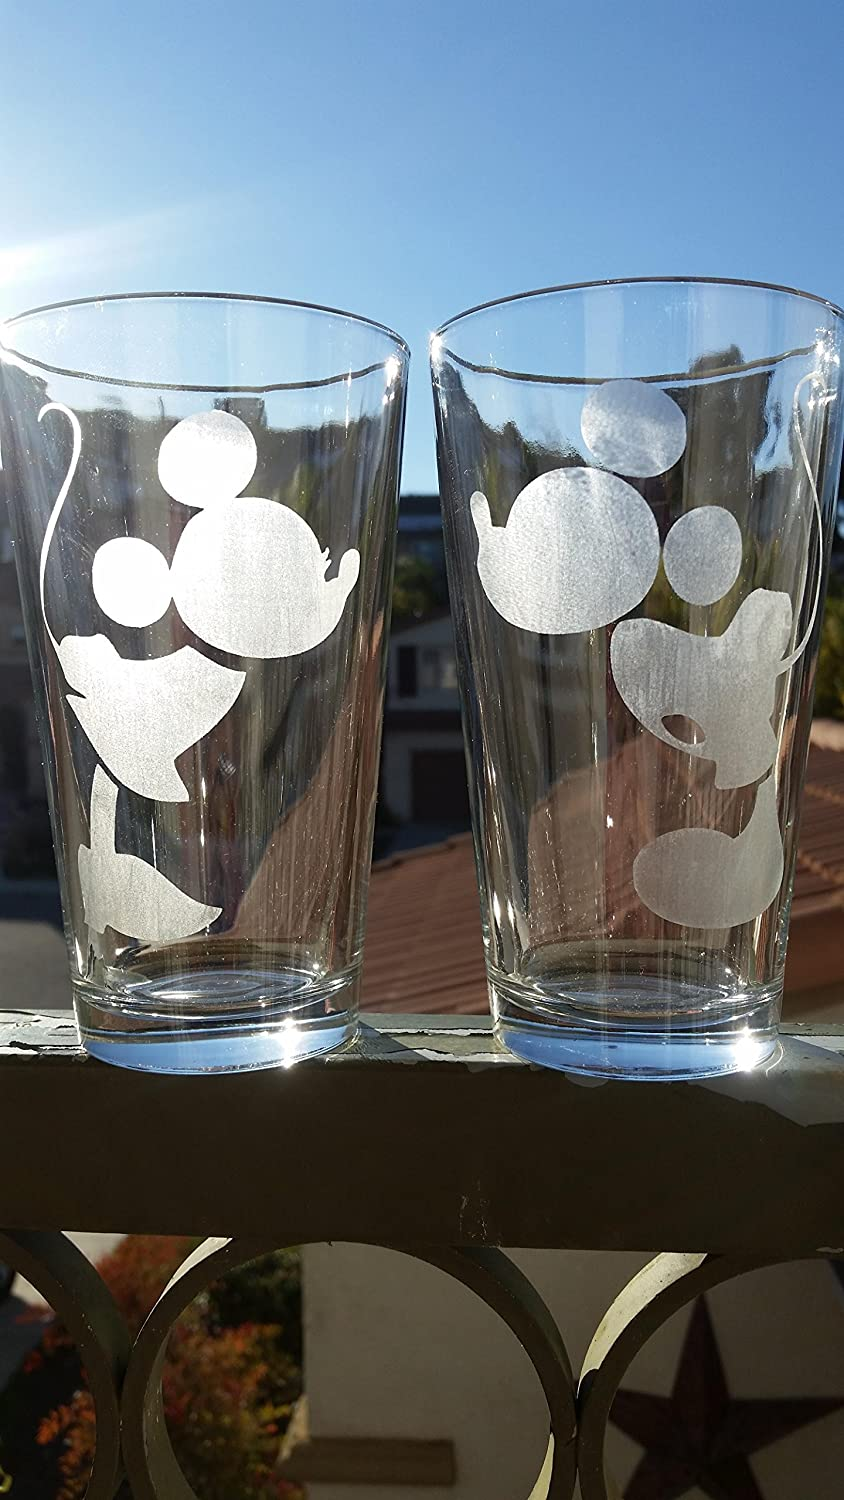 Minnie & Mickey Mouse Disney Inspired Pint Glass Set 16 oz. Beer Cups